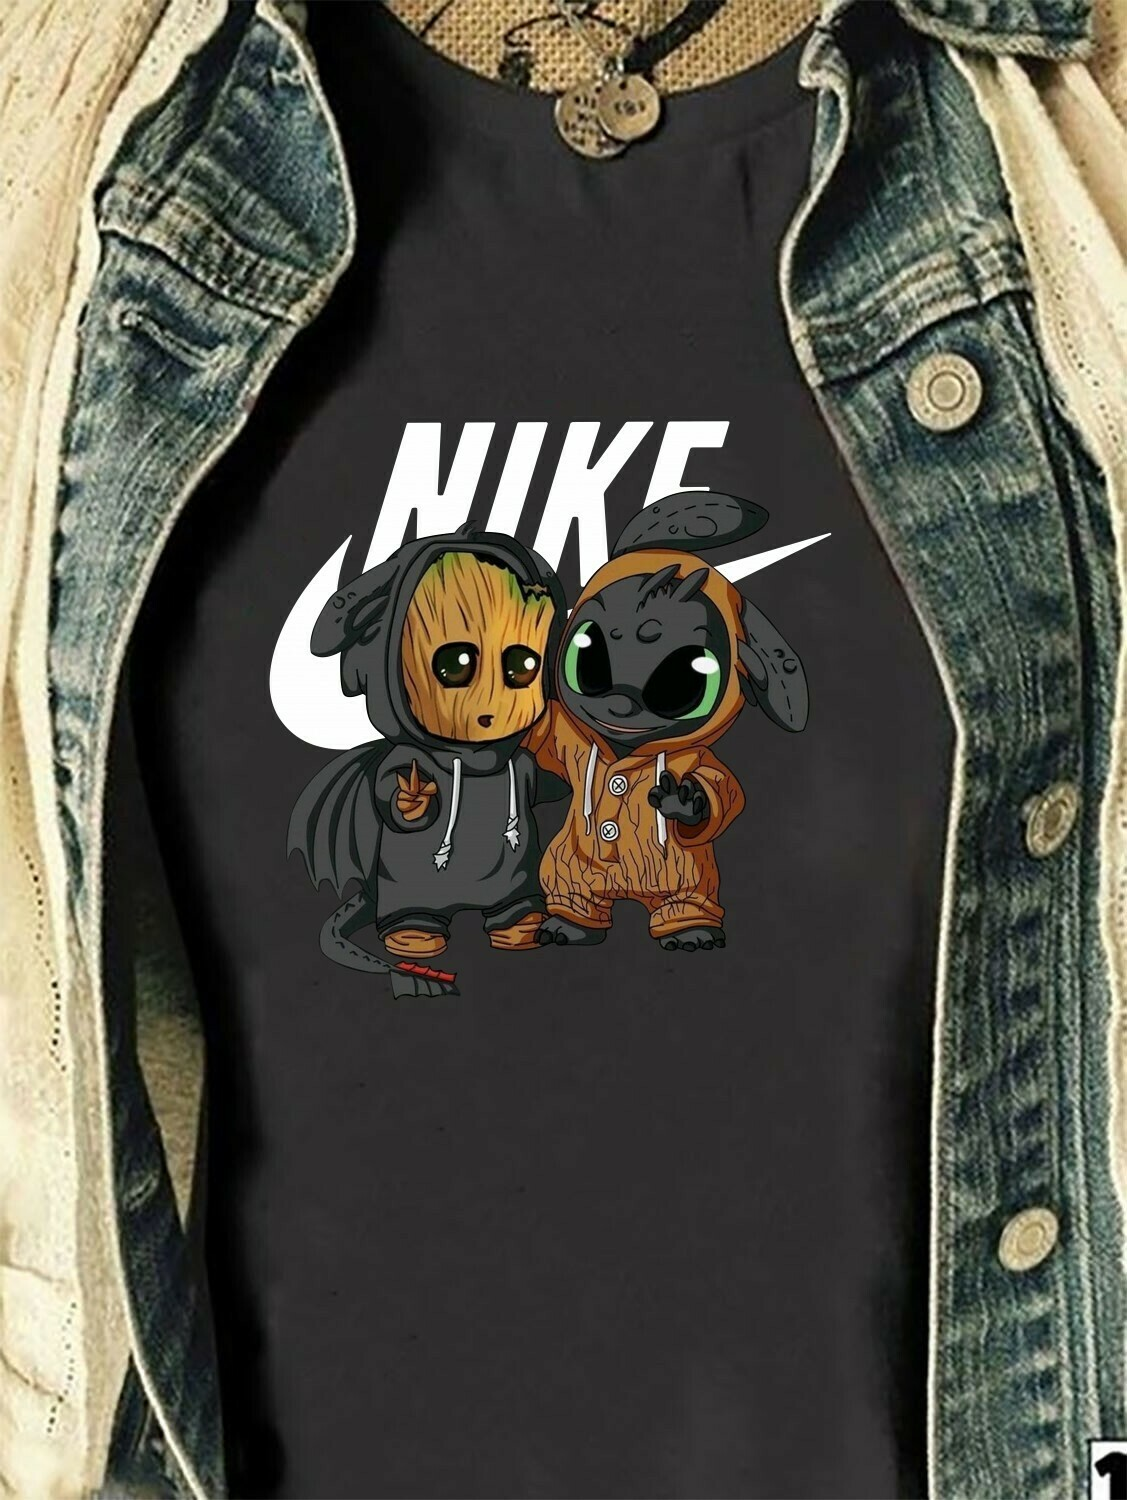 Baby Groot And Toothless Nike Deadpool Guardians Of The Galaxy Fan Star War Plus The Mandalorian Disney friends Festive Force T-Shirt Long Sleeve Sweatshirt Hoodie Jolly Family Gifts